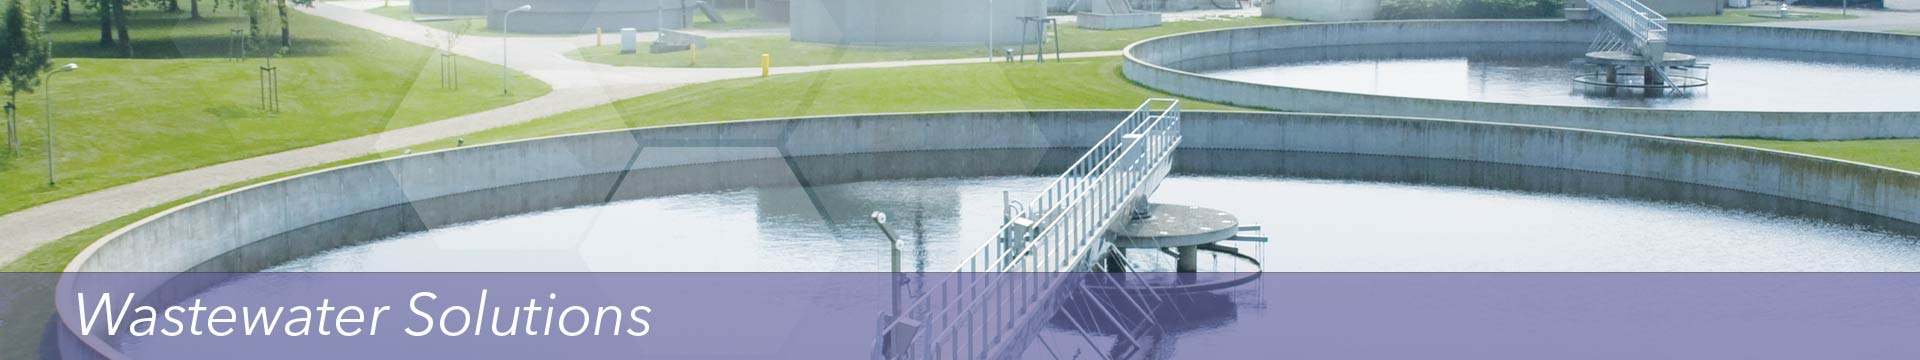 Each industry must comply with different regulatory standards, but all labs share one thing: the need to trust reliable equipment. YSI and Xylem Lab Solutions offers cost-effective titrators and accessories for labs in the Wastewater Industry.